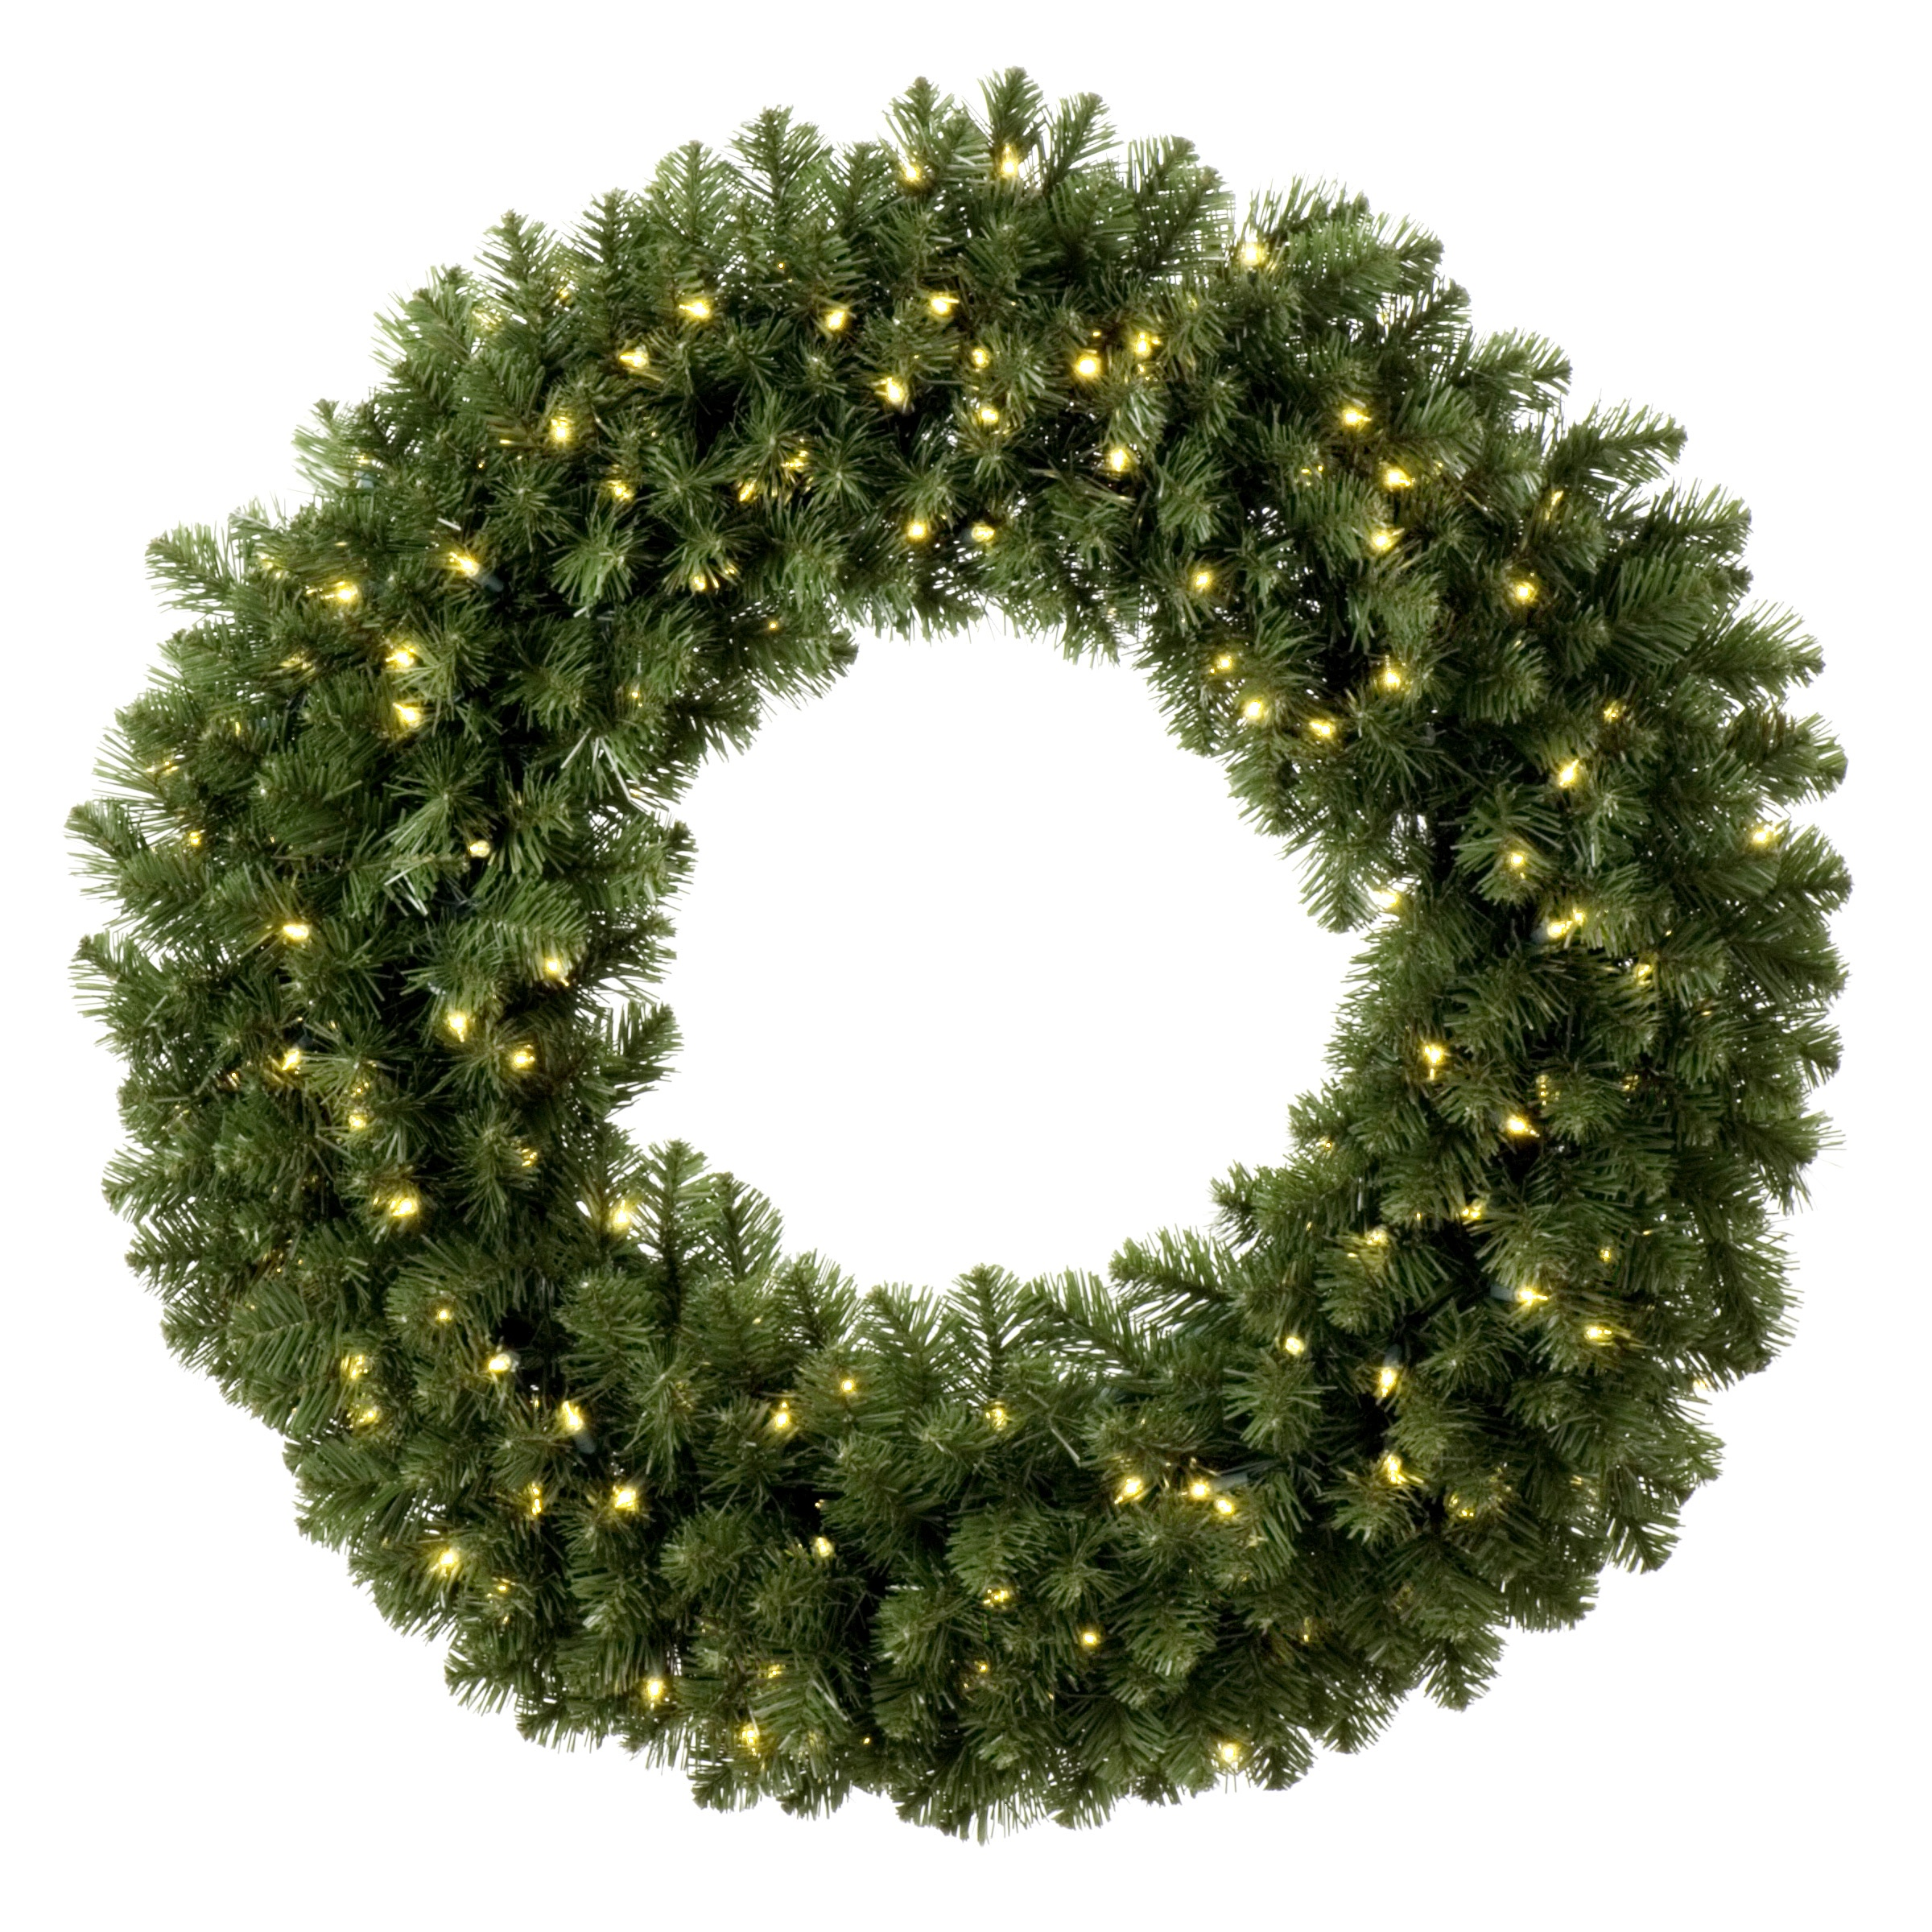 Artificial Christmas Wreaths Sequoia Fir Prelit